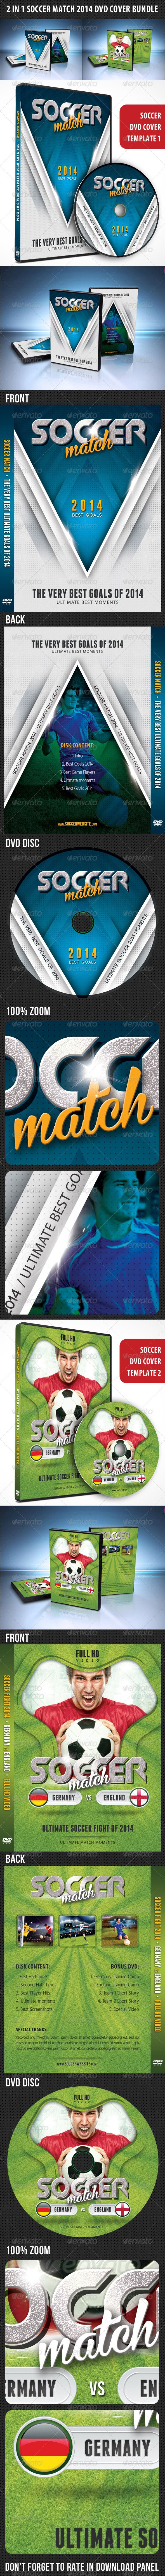 2 in 1 Soccer Match 2014 DVD Cover Bundle